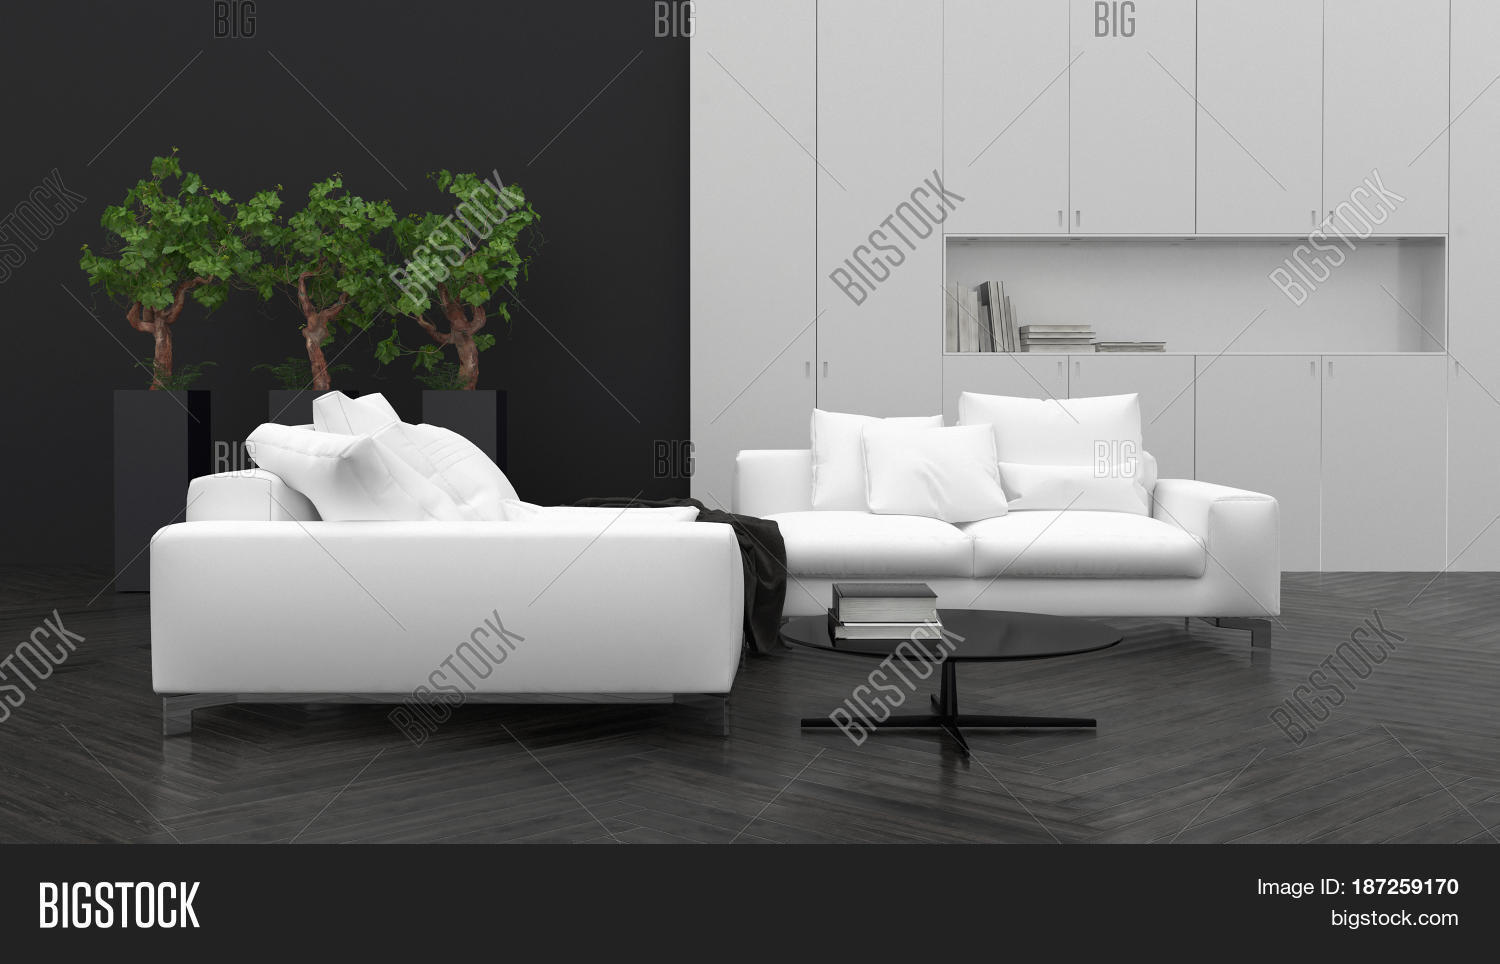 Astonishing Comfortable Minimalist Image Photo Free Trial Bigstock Unemploymentrelief Wooden Chair Designs For Living Room Unemploymentrelieforg